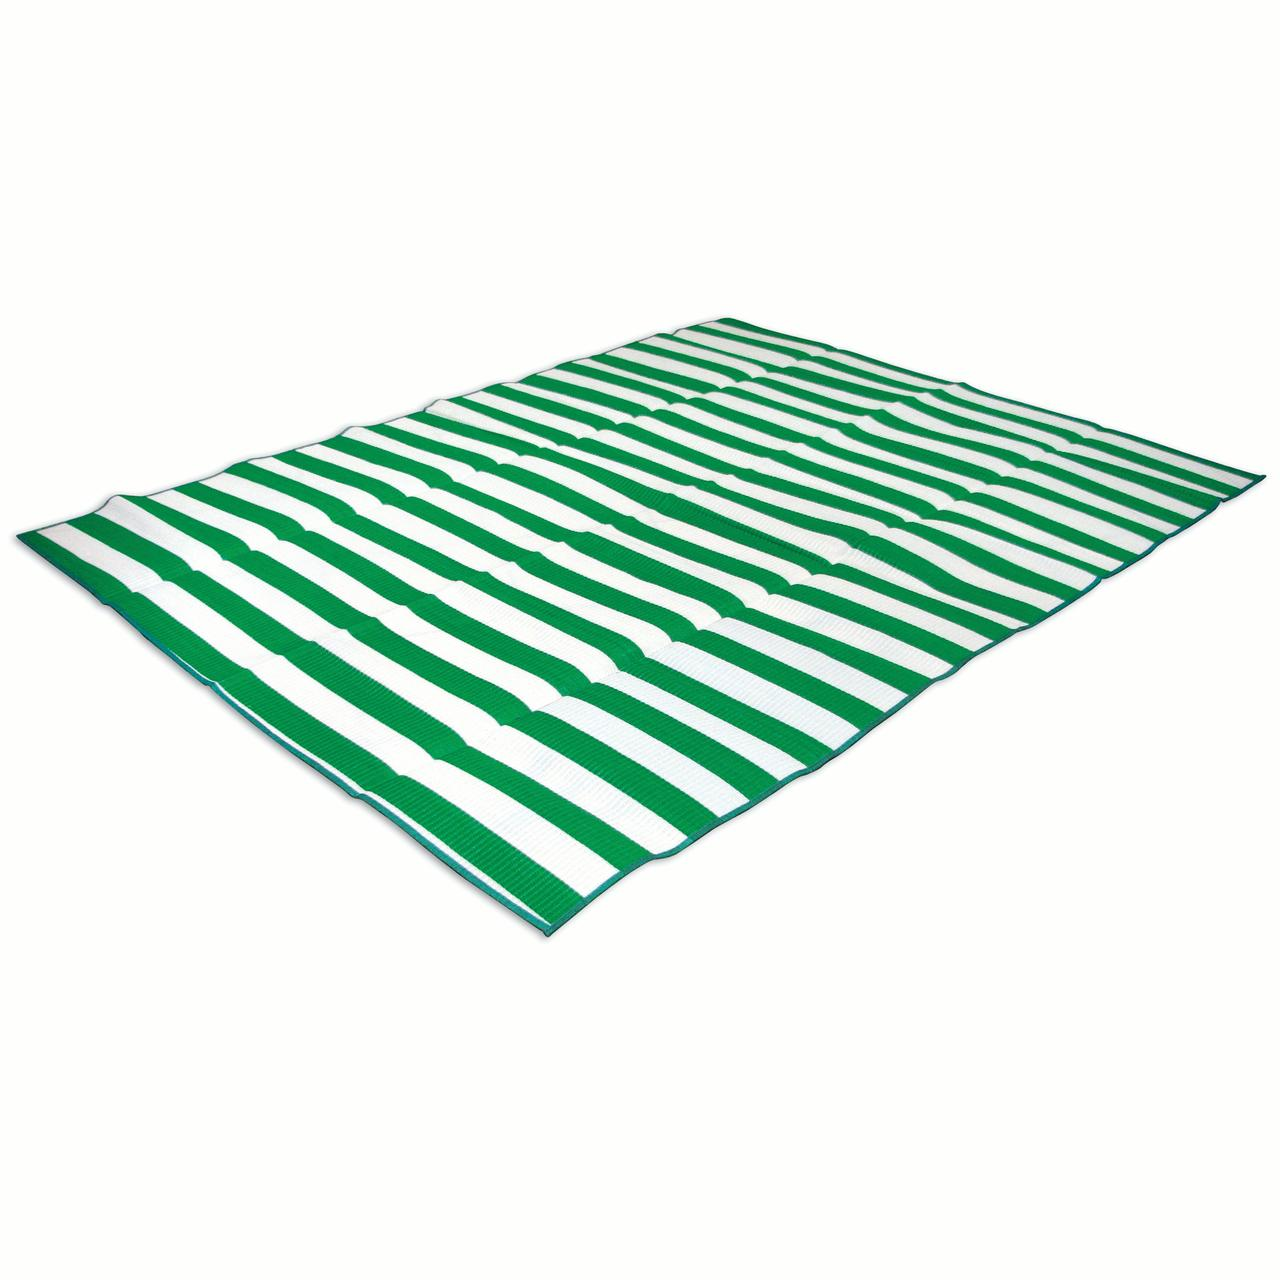 "Stansport Tatami Ground Mat 60"" x 78"" - Green"